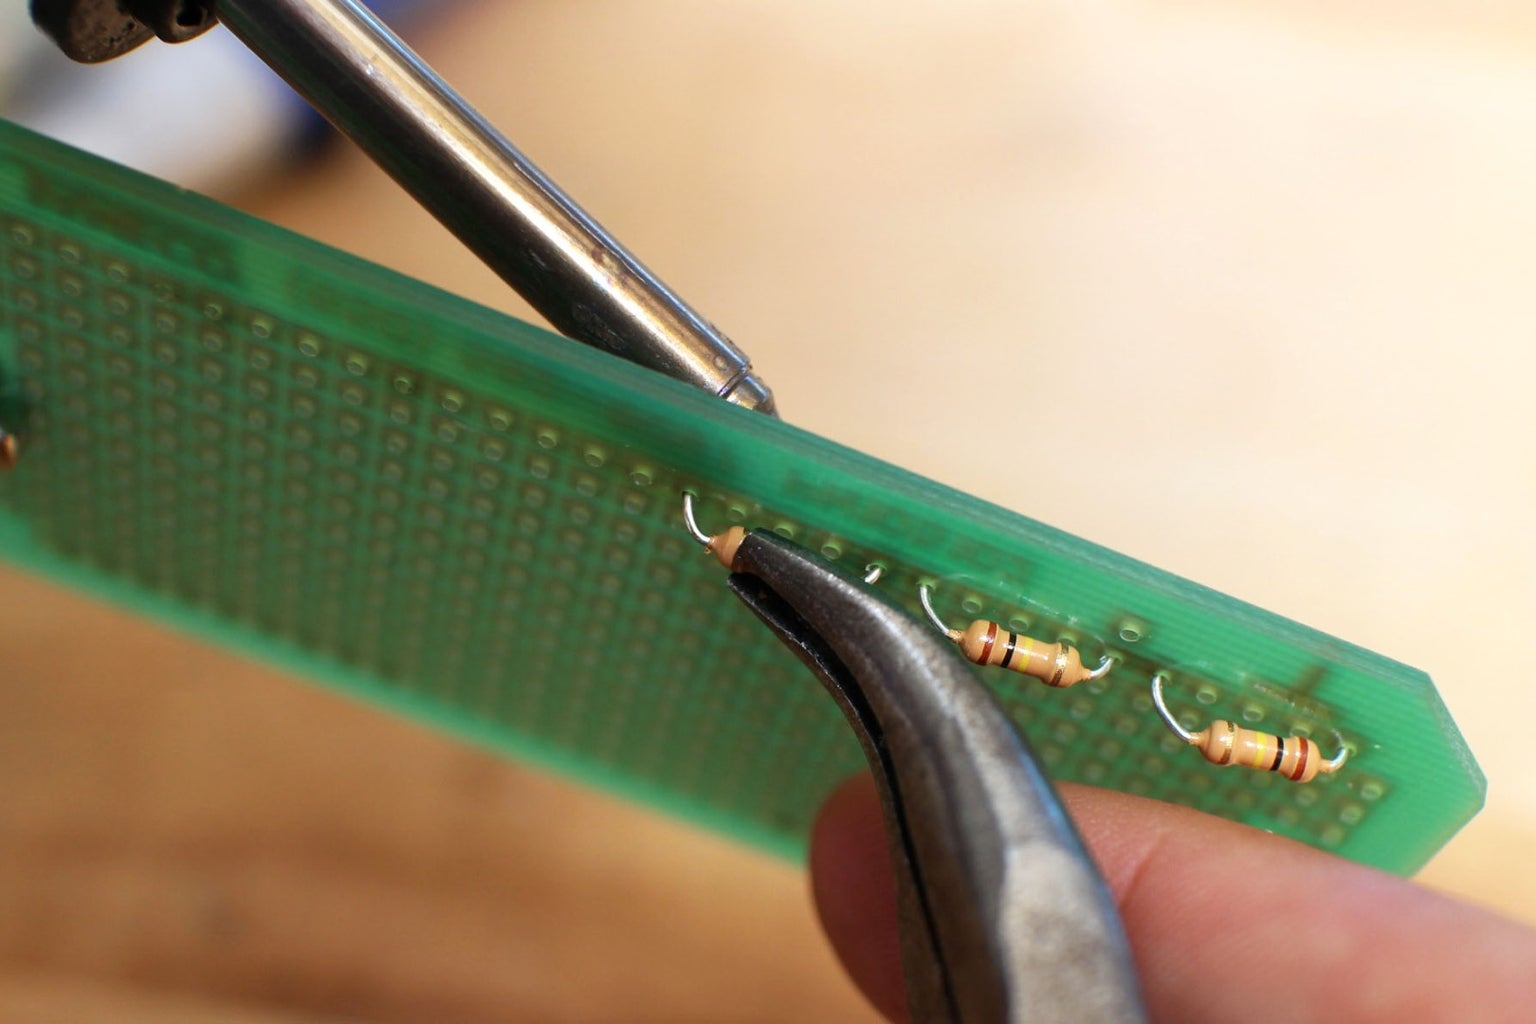 How to Use a Soldering Iron to Desolder